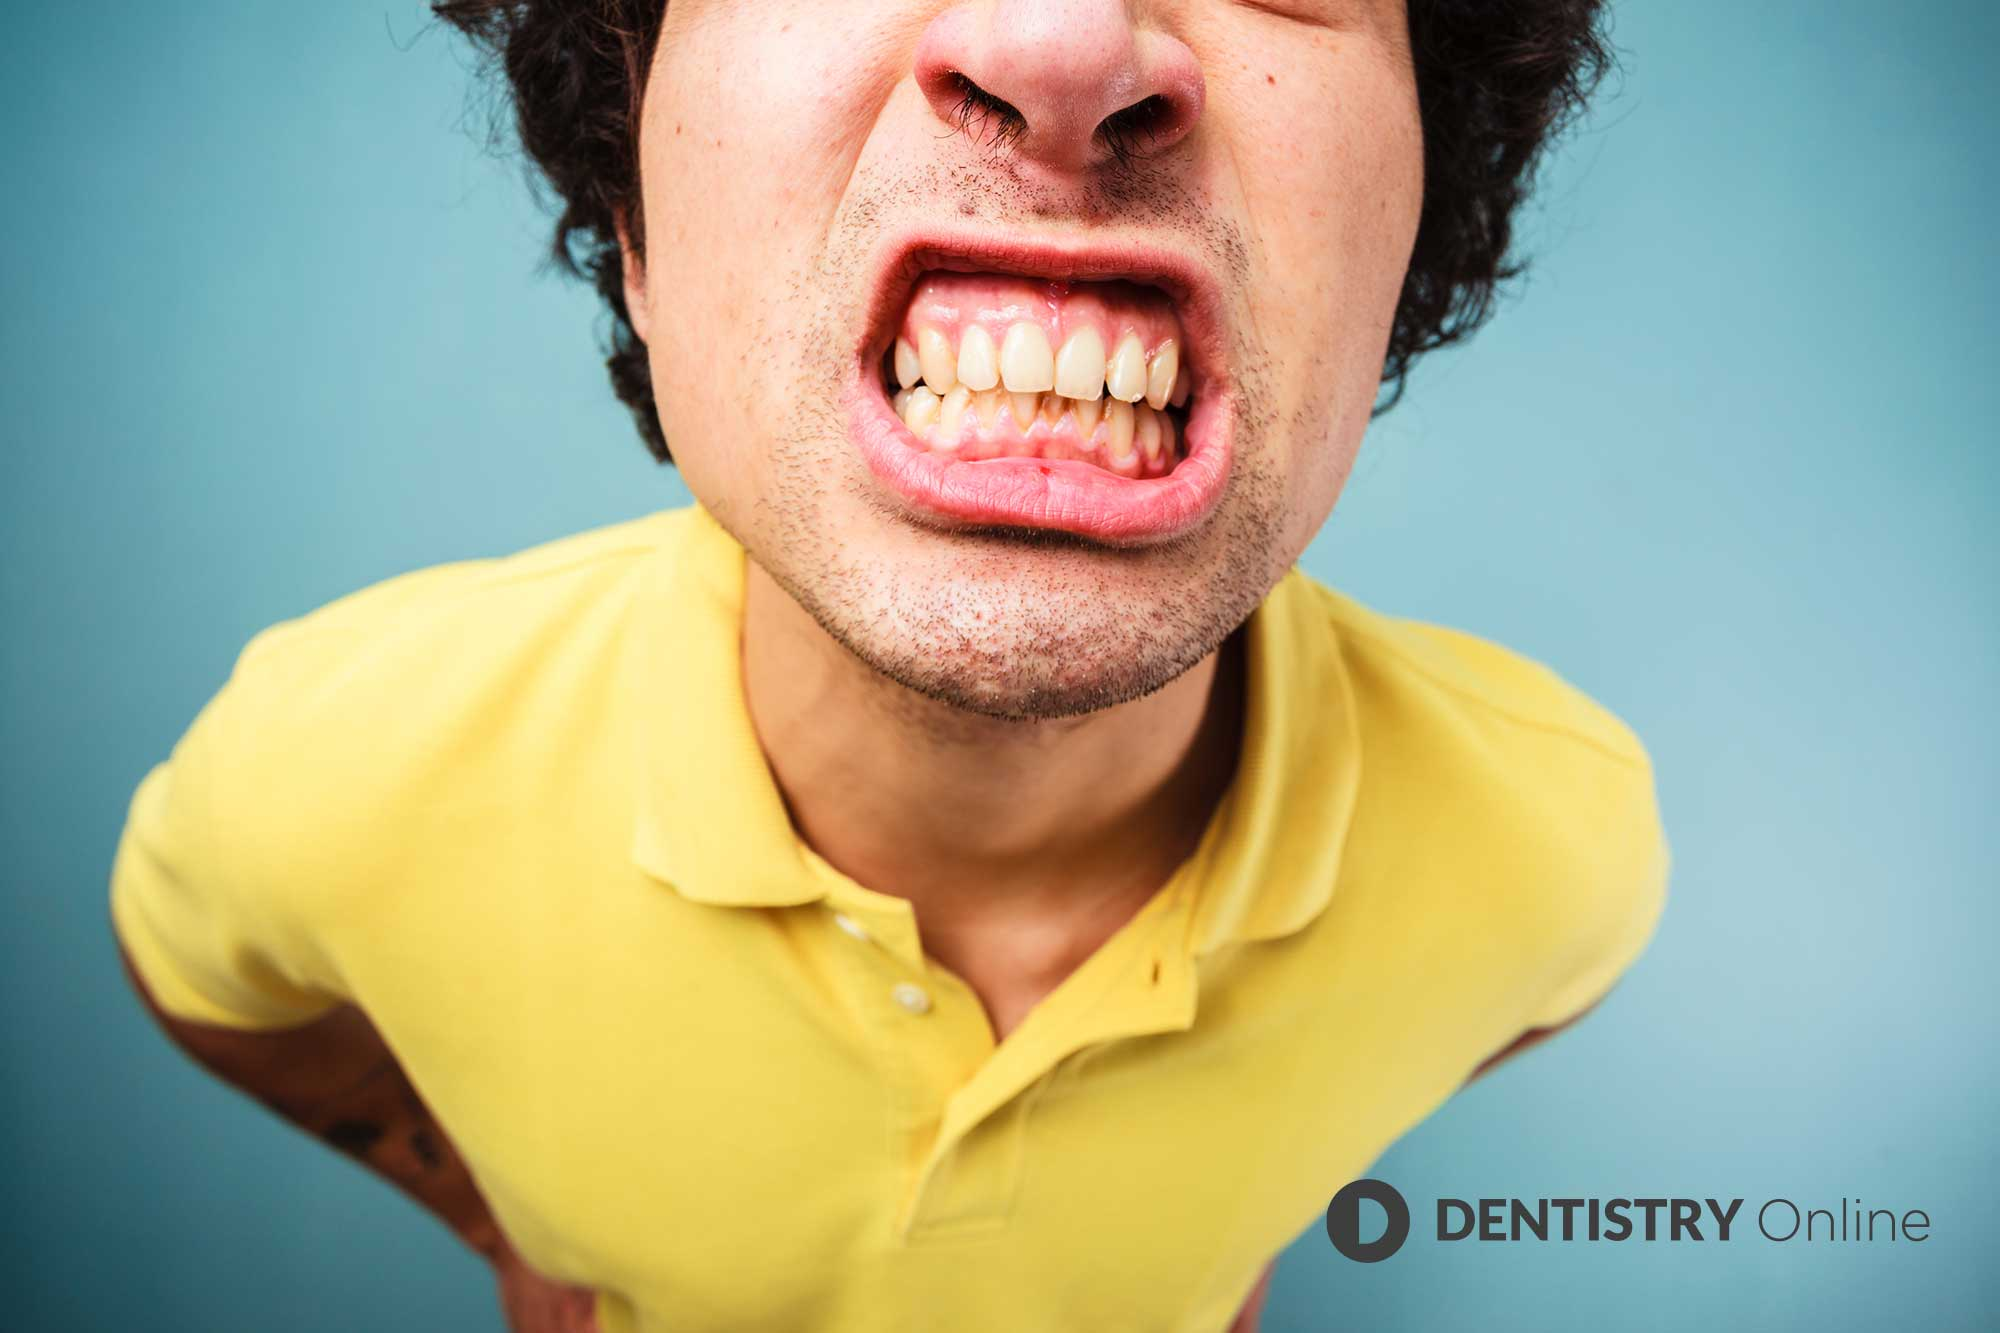 COVID-19 lockdown stress and anxiety upped rates of daytime jaw clenching and bruxism, findings from a new study have revealed